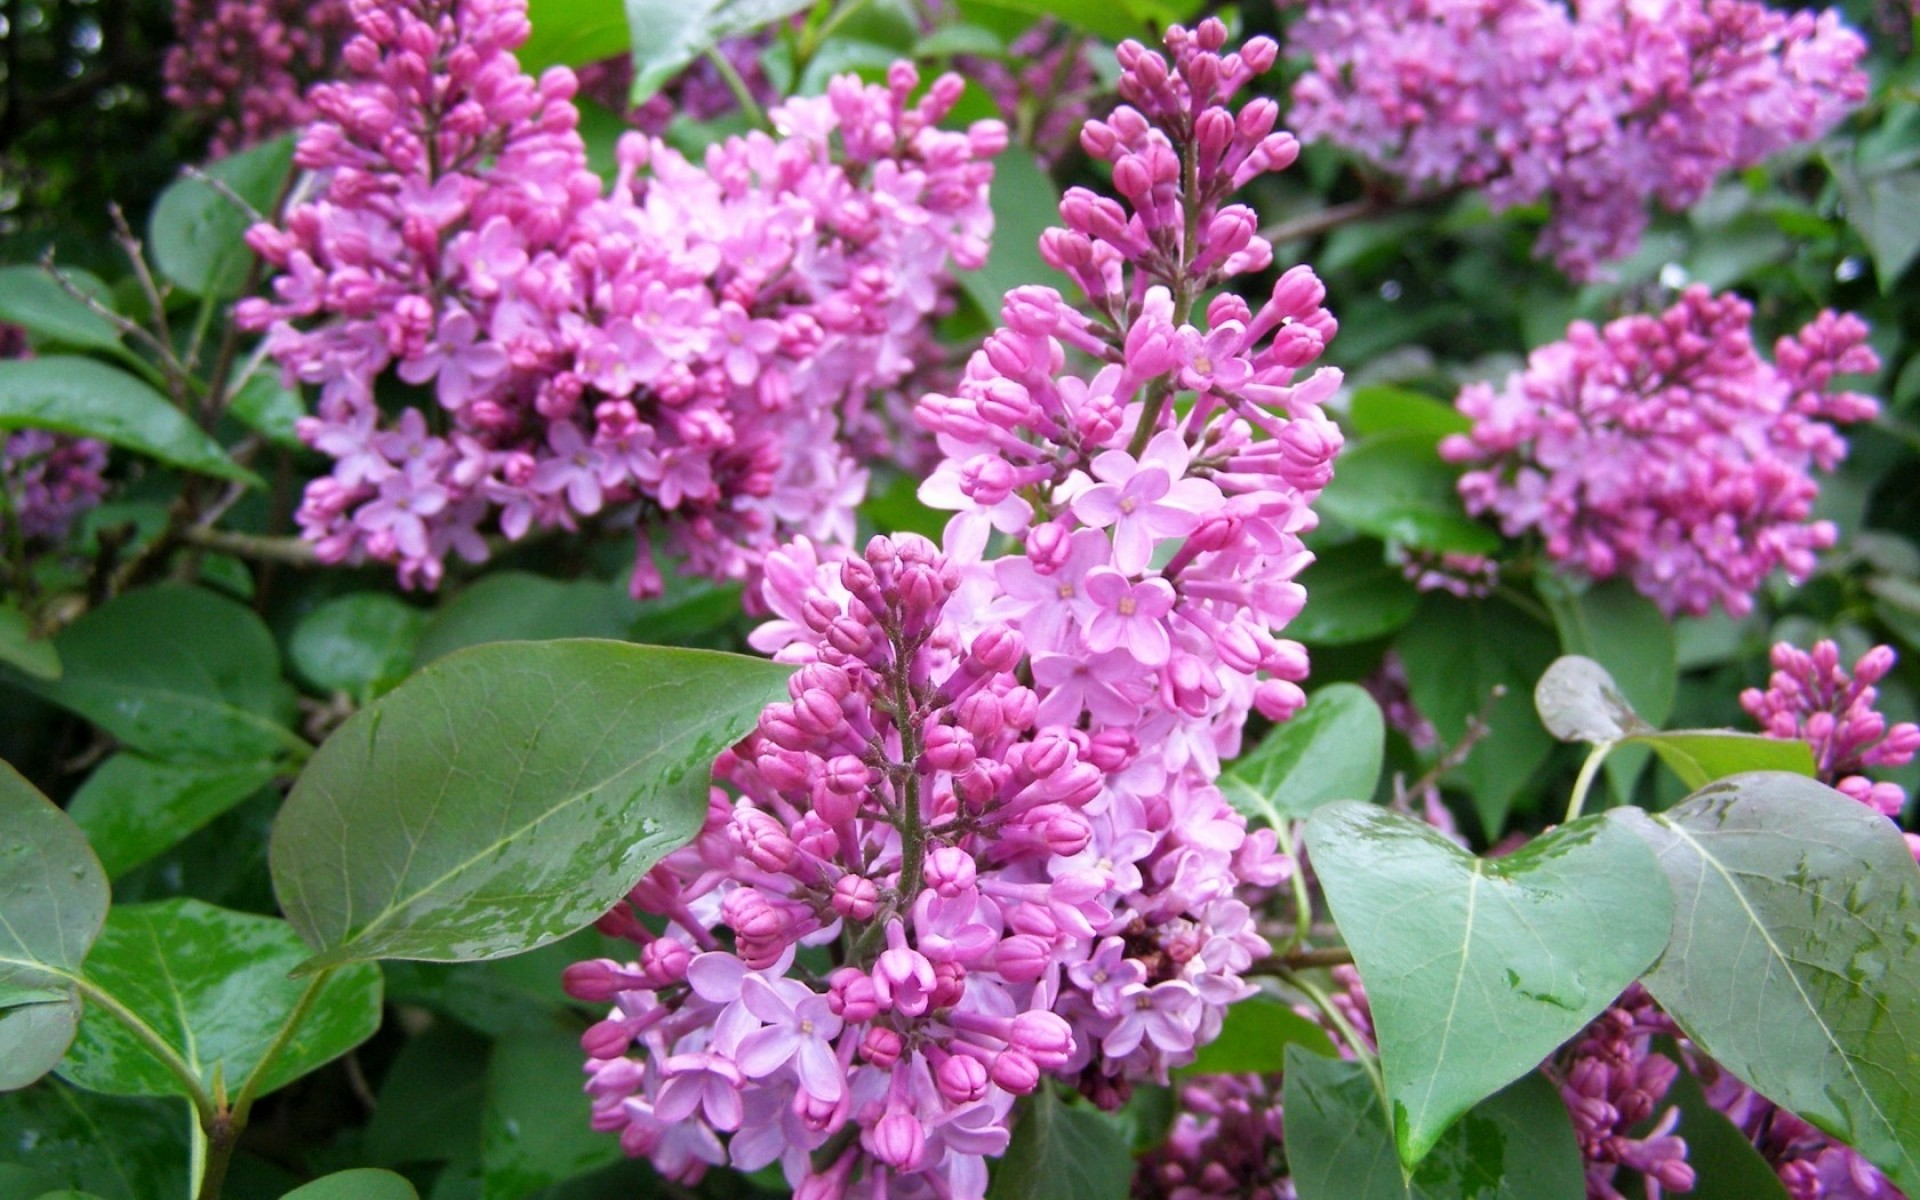 flowers flower flora nature garden leaf blooming petal floral shrub summer season color violet growth lavender outdoors tree park beautiful lilac violet lilac